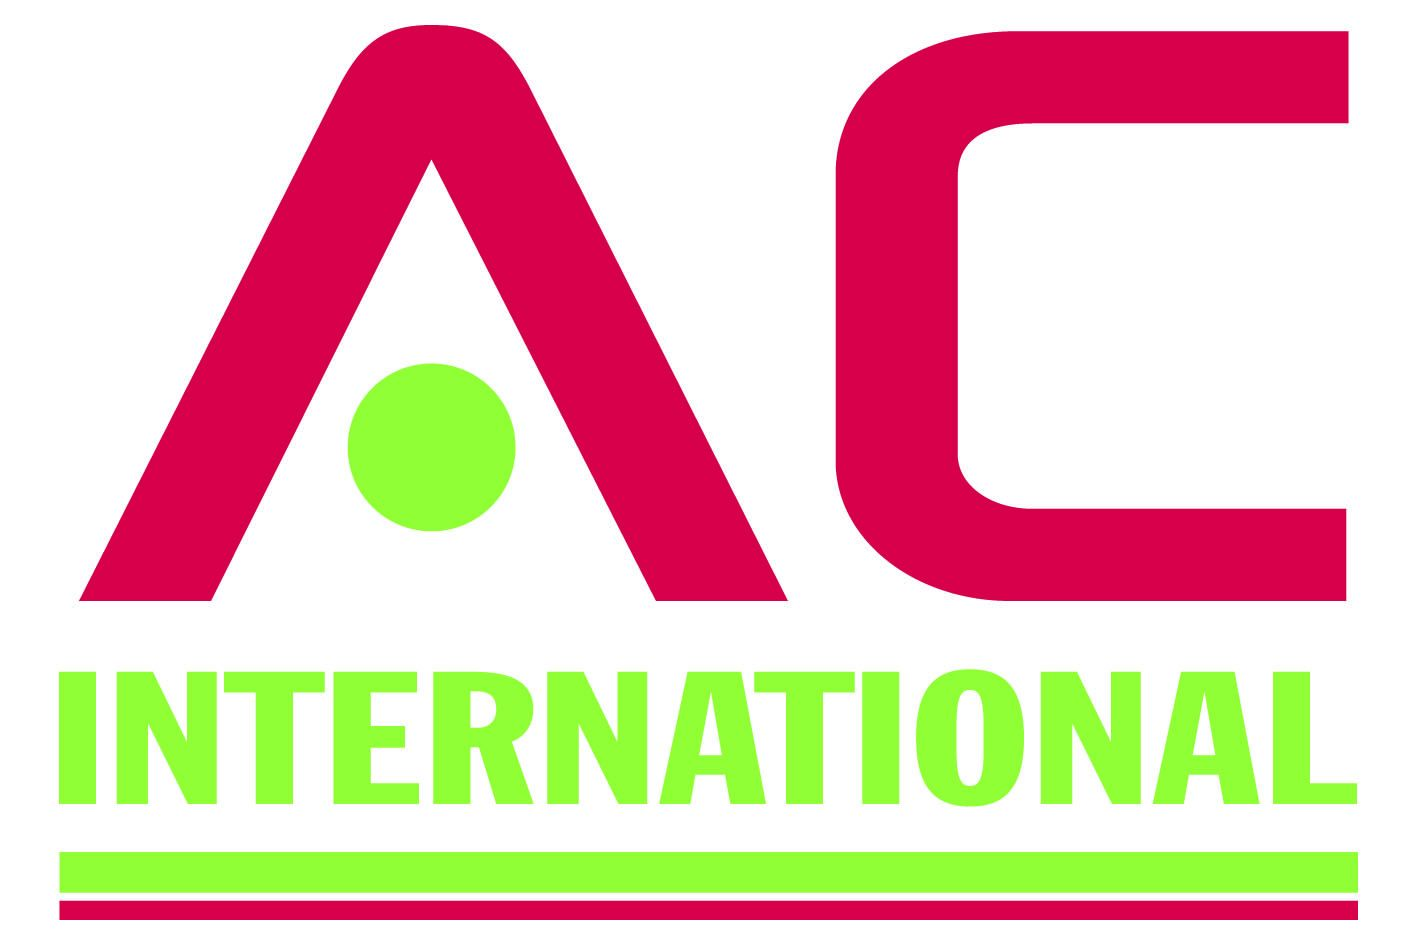 AC INTERNATIONAL